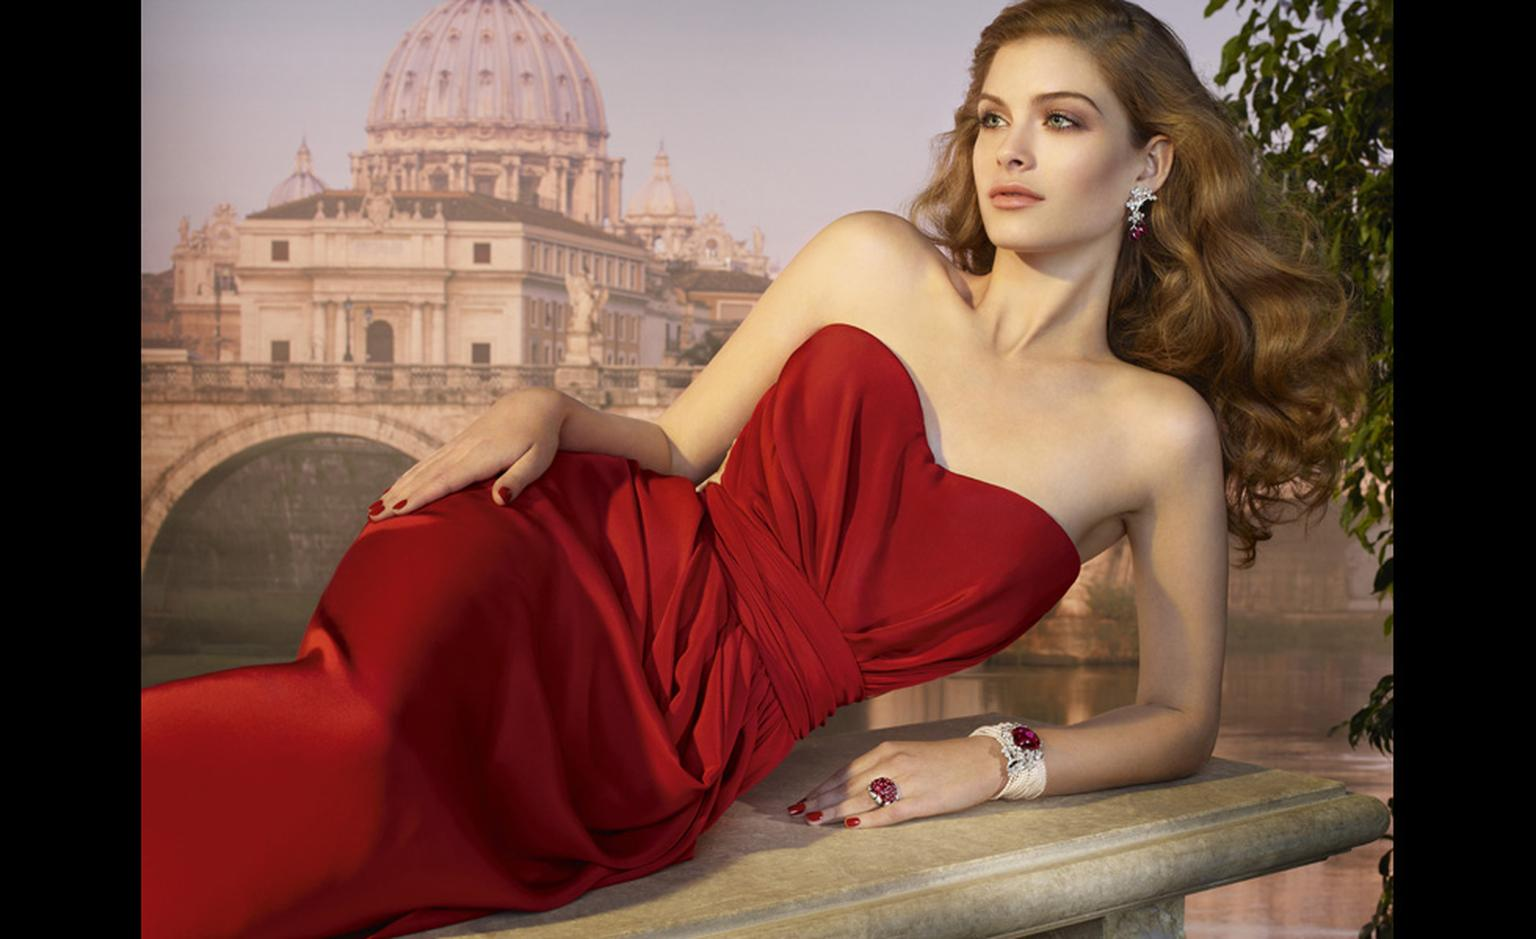 Cartier's new high jewellery collection Sortilège de Cartier was launched in Rome, the city of la dolce vita.